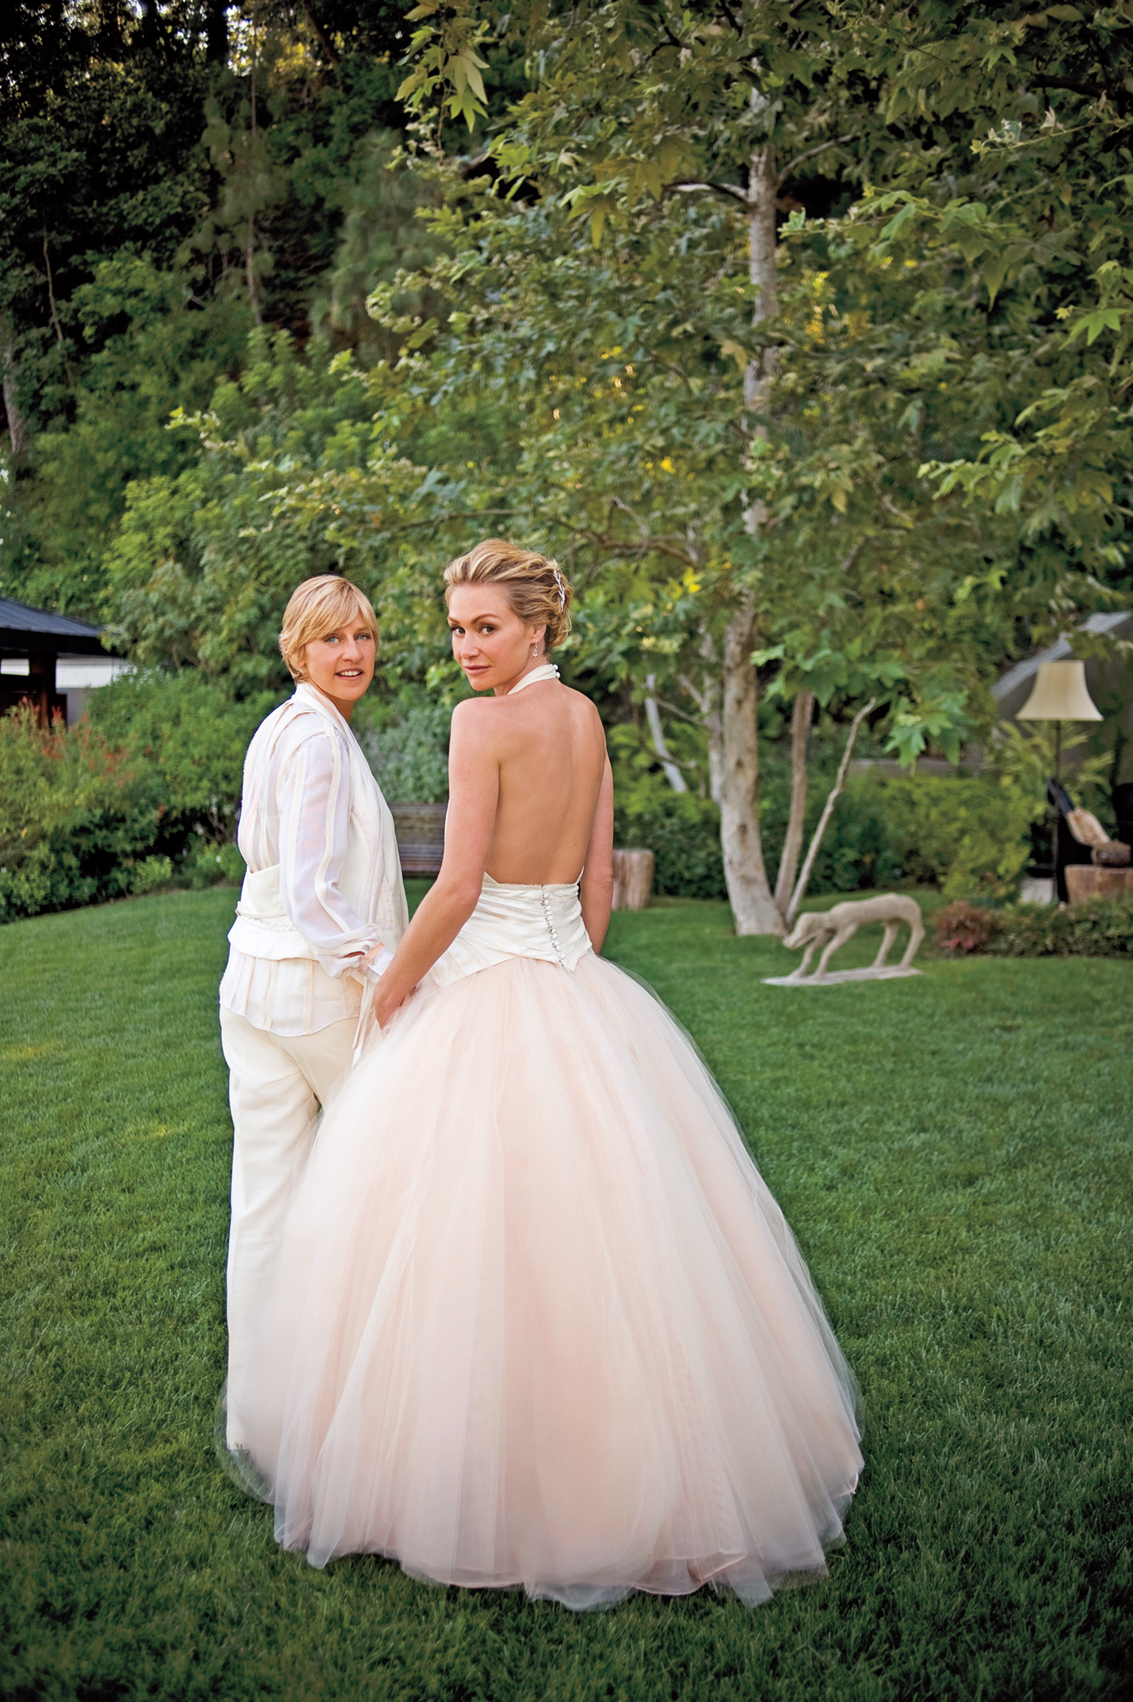 DeGeneres and Portia de Rossi exchanged vows in a ceremony at their Beverly Hills home on Aug. 16, 2008, during the brief period of time when same-sex marriage was legal in California.